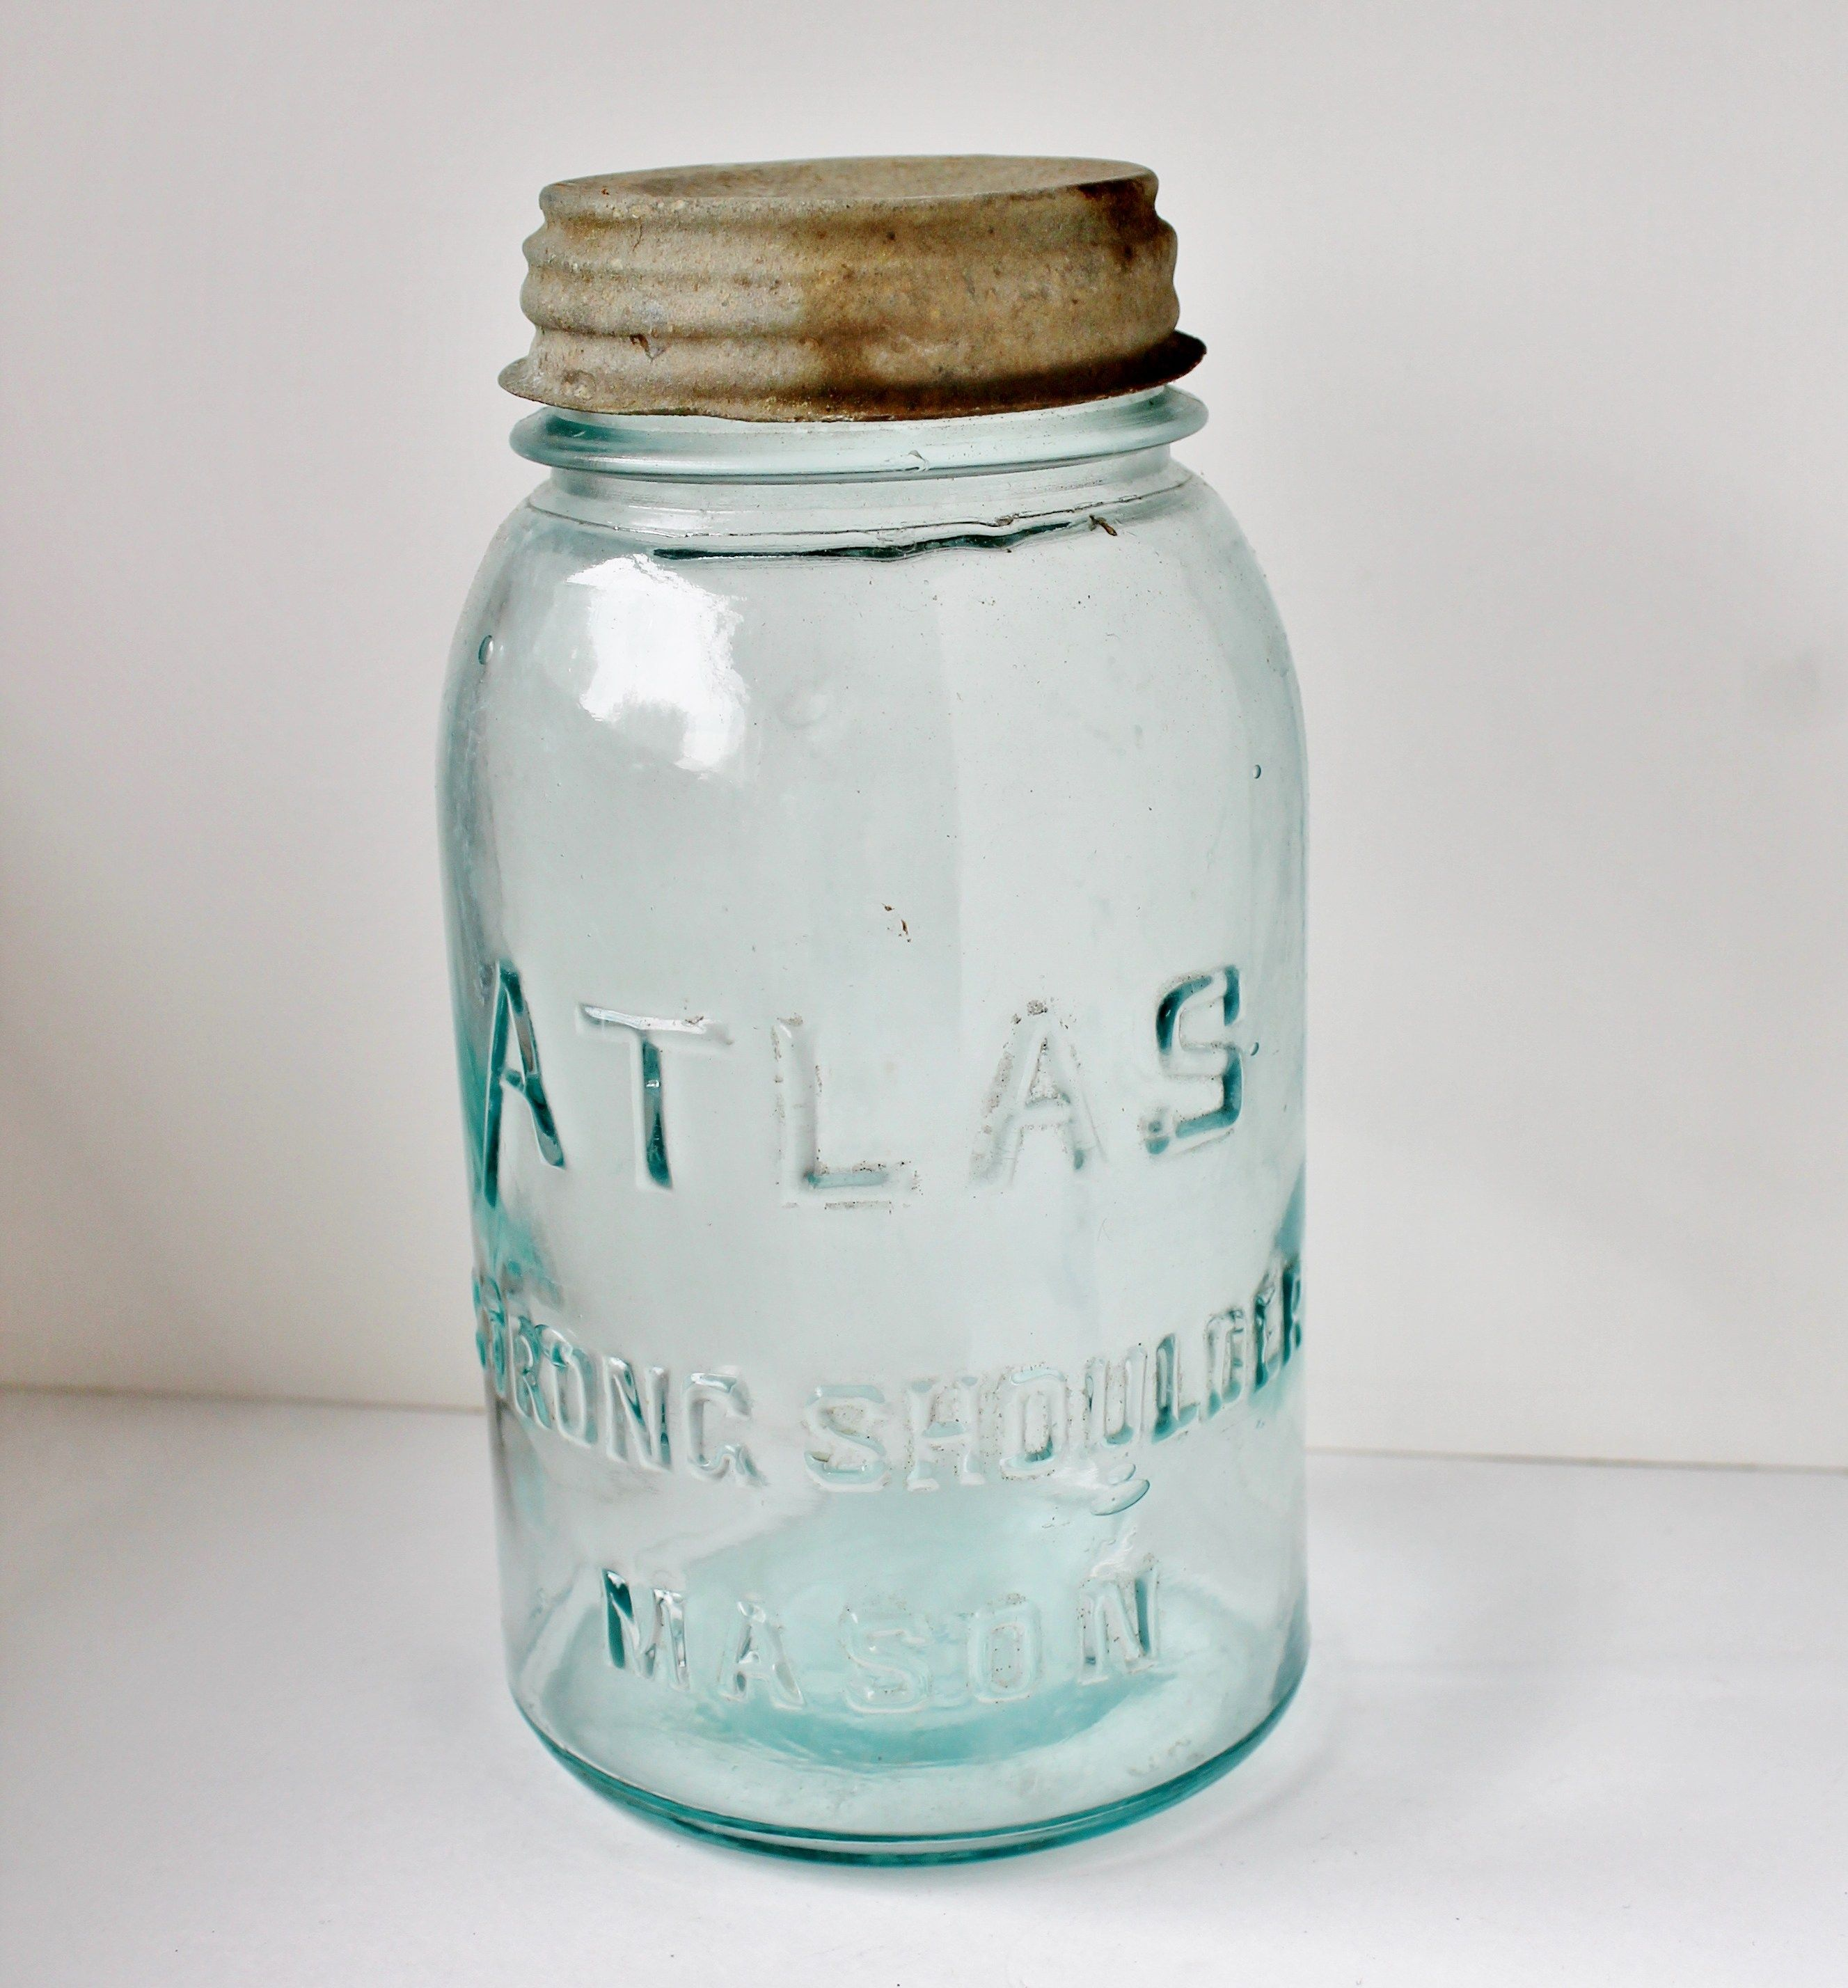 Antique Vintage Canning Jar Price Guide Canning Jars Vintage